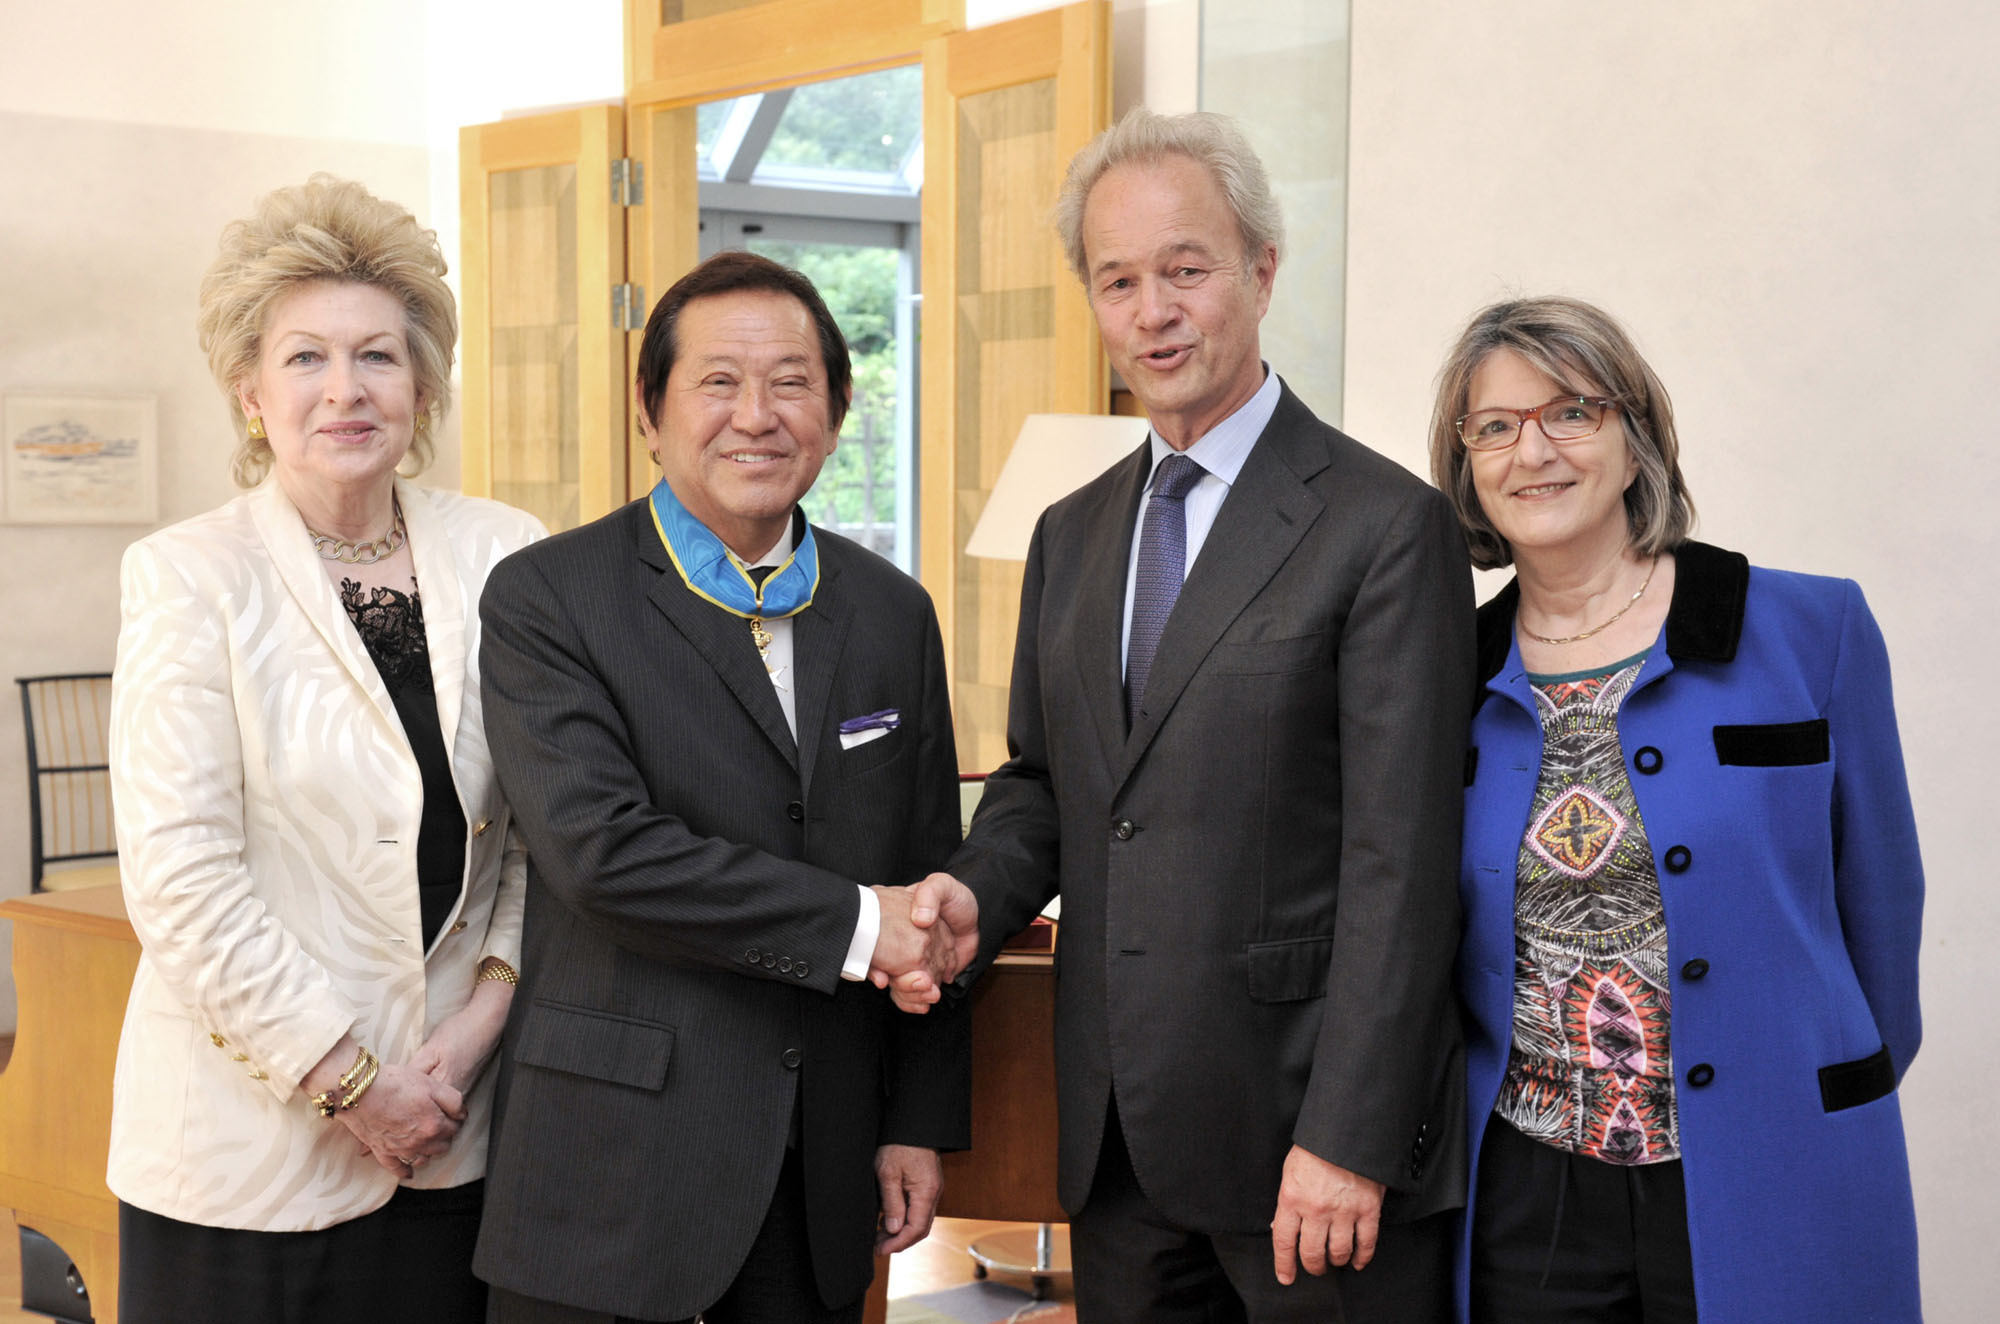 Swedish Ambassador Magnus Robach (second from right) shakes hands with Honorary Consul in Nagano Soichiro Yoshida, after presenting him with the insignia of Commander of Order of the Polar Star for his long service, flanked by Yoshida's wife, Carole (left) and the ambassador's wife, Michele, at the embassy in Tokyo on June 3. | YOSHIAKI MIURA